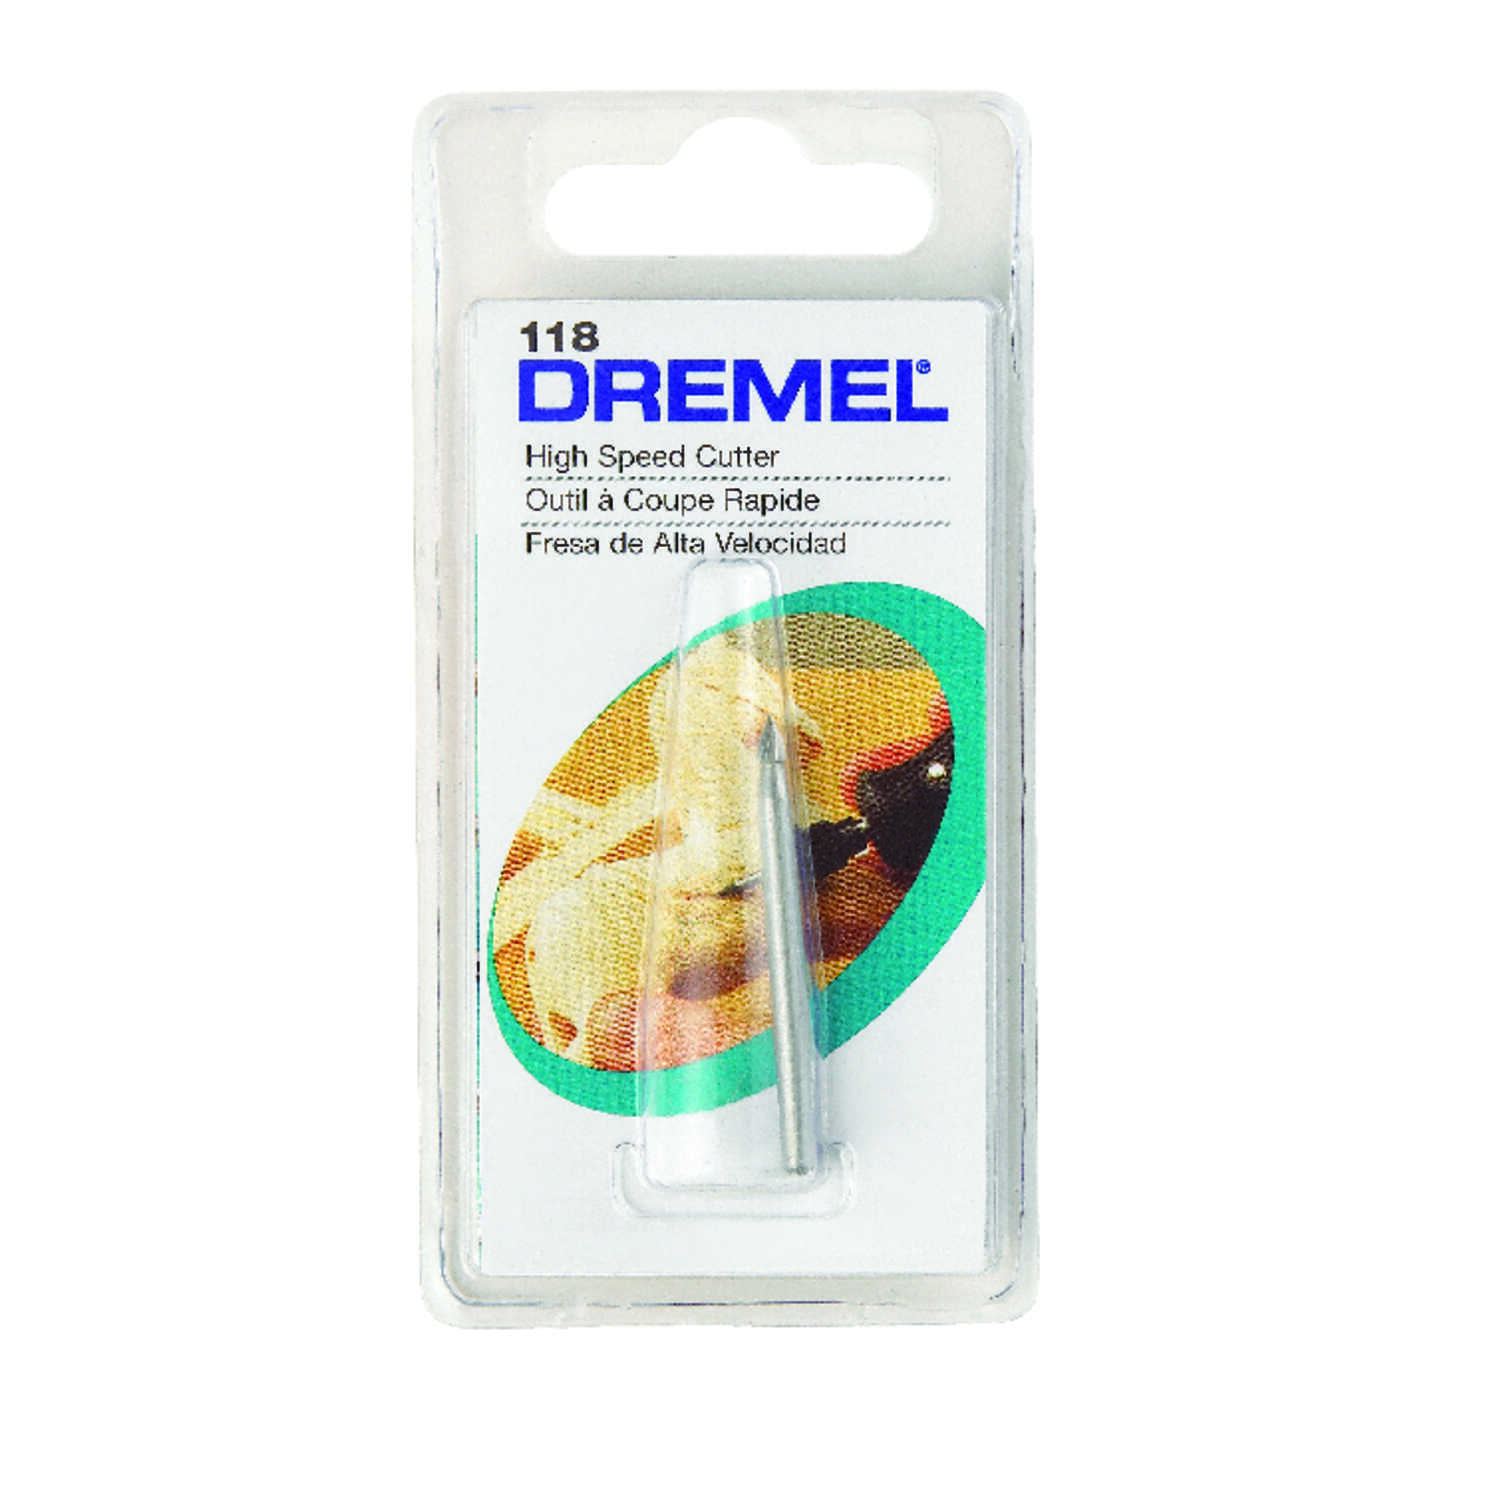 Dremel  1/8 in   x 1.5 in. L x 1/8 in. Dia. Steel  1 pk High Speed Cutter